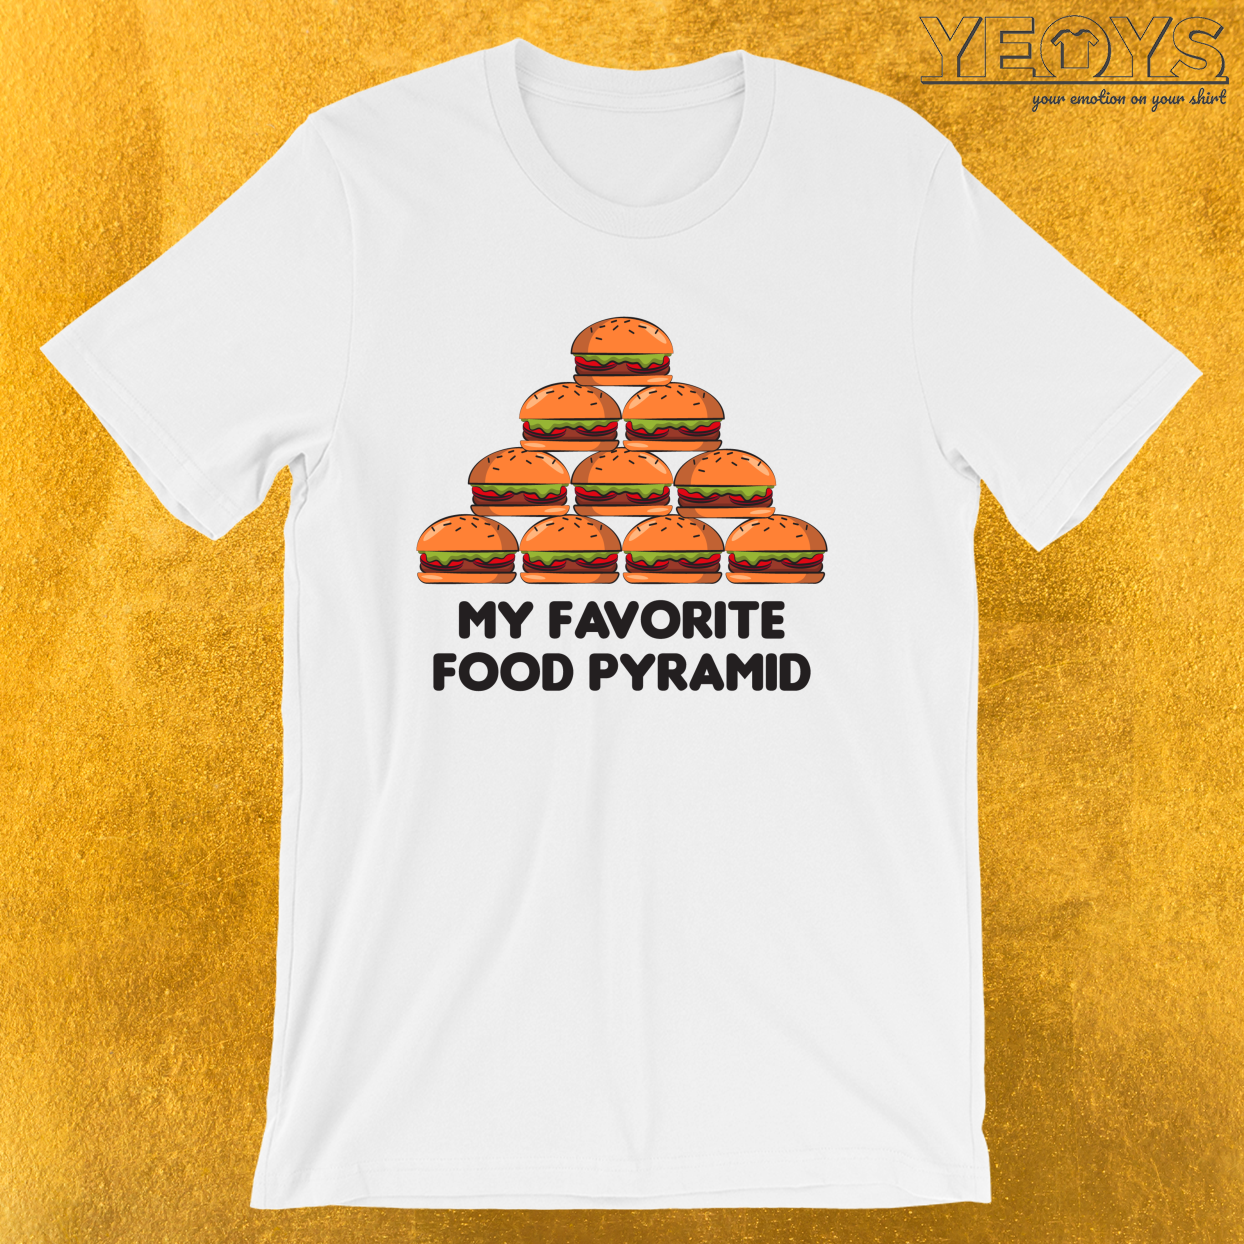 Love Burger – My Favorite Food Pyramid Tee